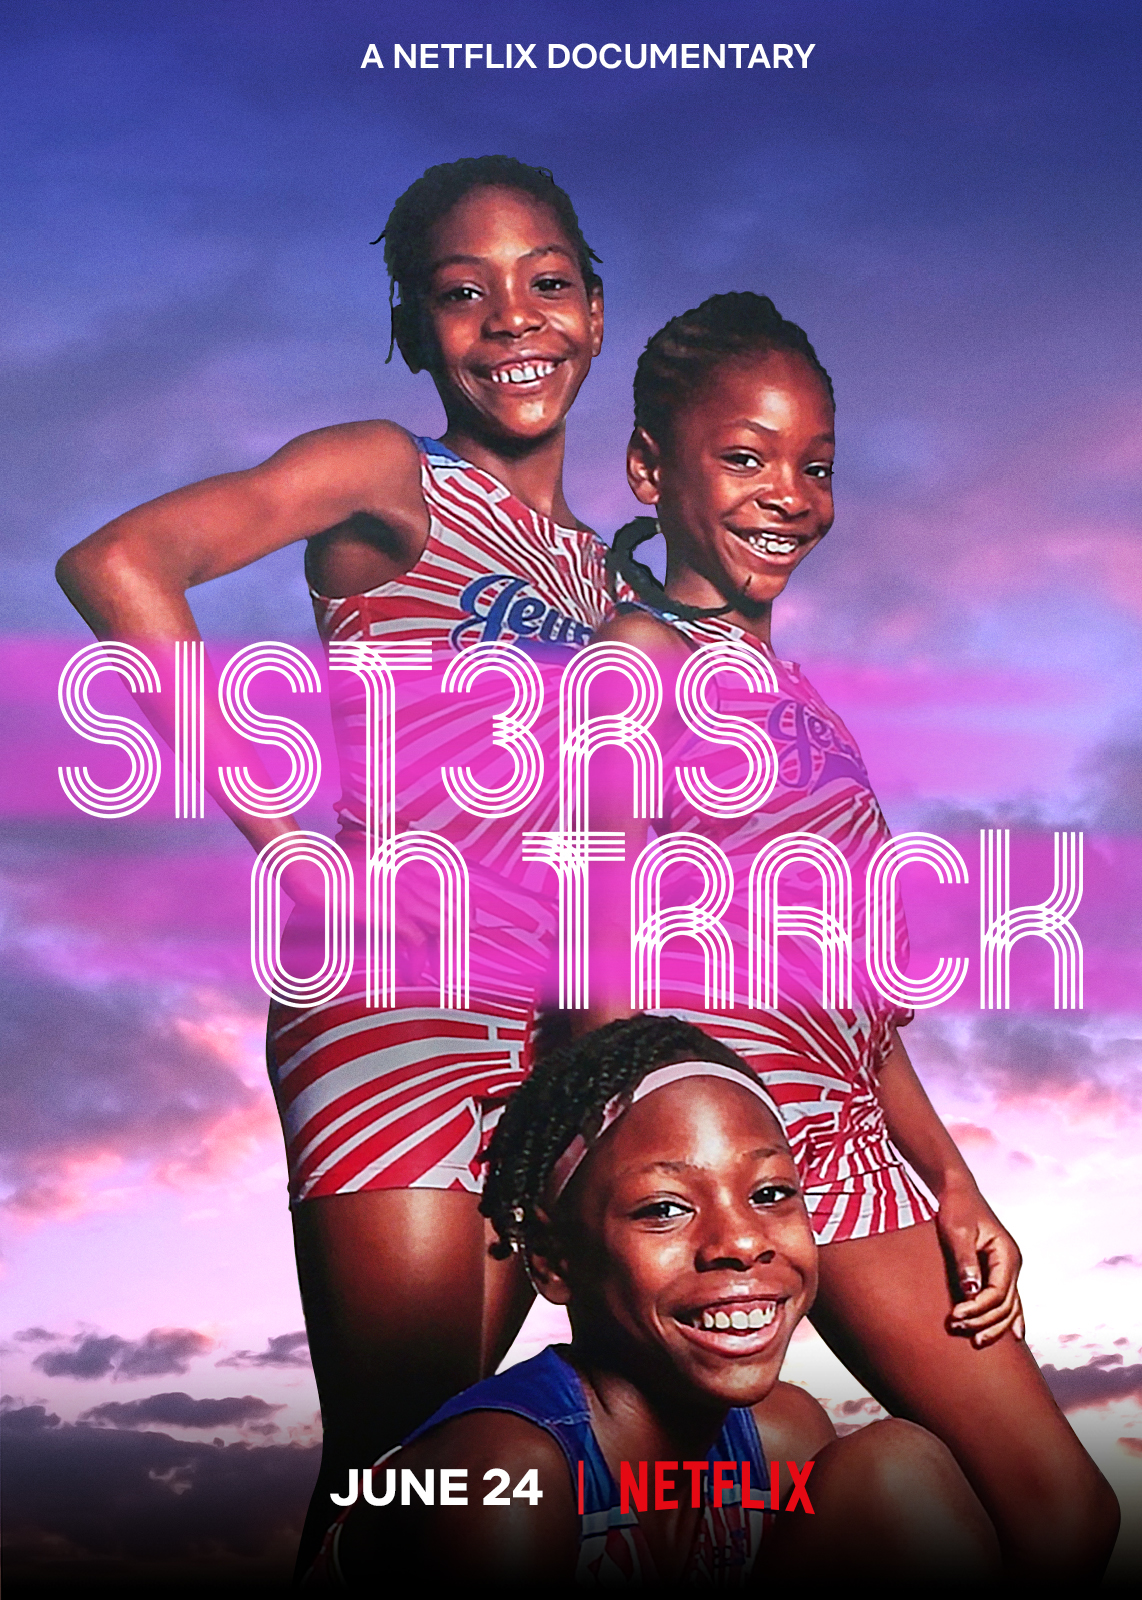 A Netflix Documentary: Sisters On Track